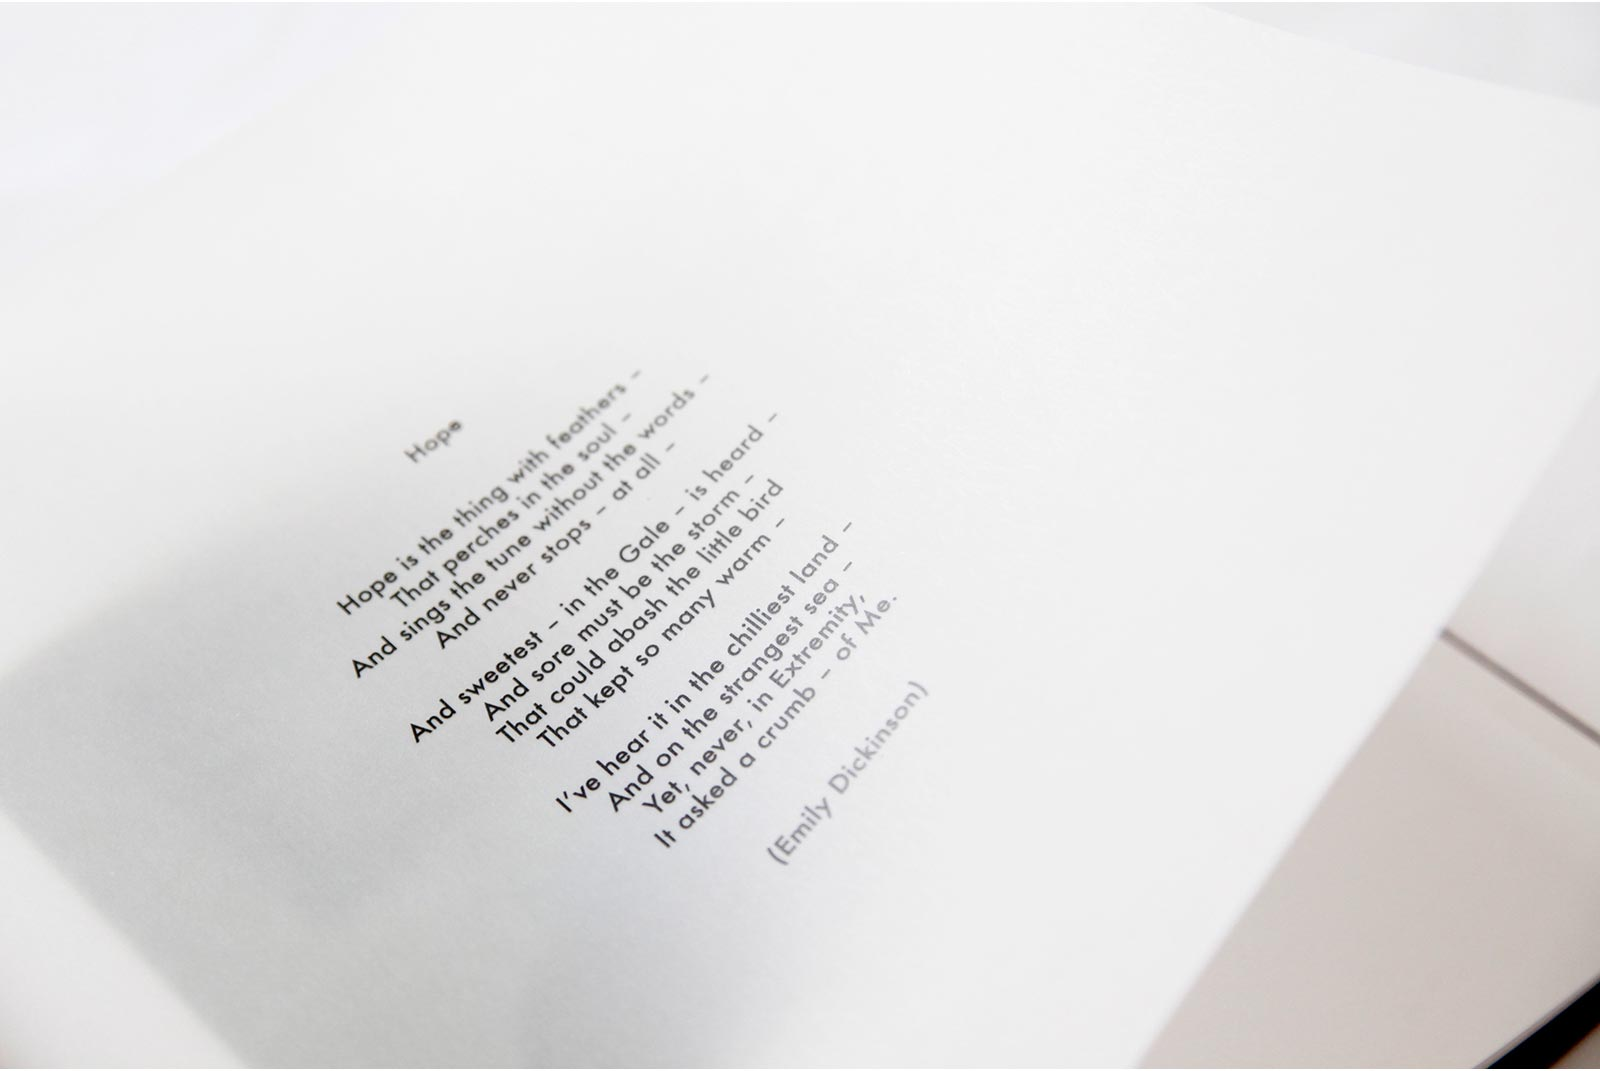 Translucent page within Q Book from Queensberry